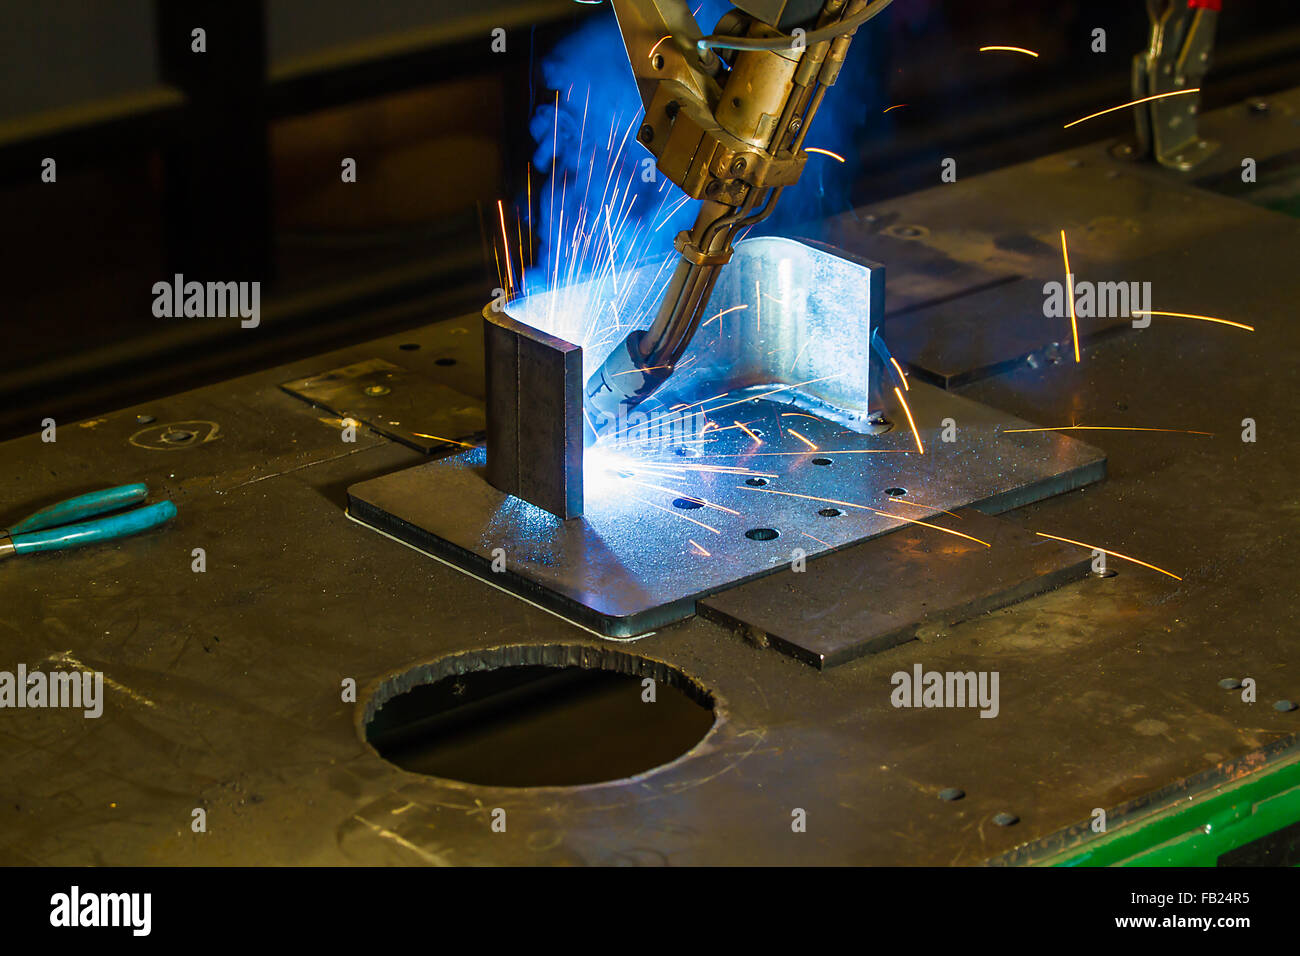 Mig Welding Stock Photos Images Alamy Welder Parts Flux Cored With Cnc Robotic Of Half Inch Steel Sparks Shooting Up Clamp And